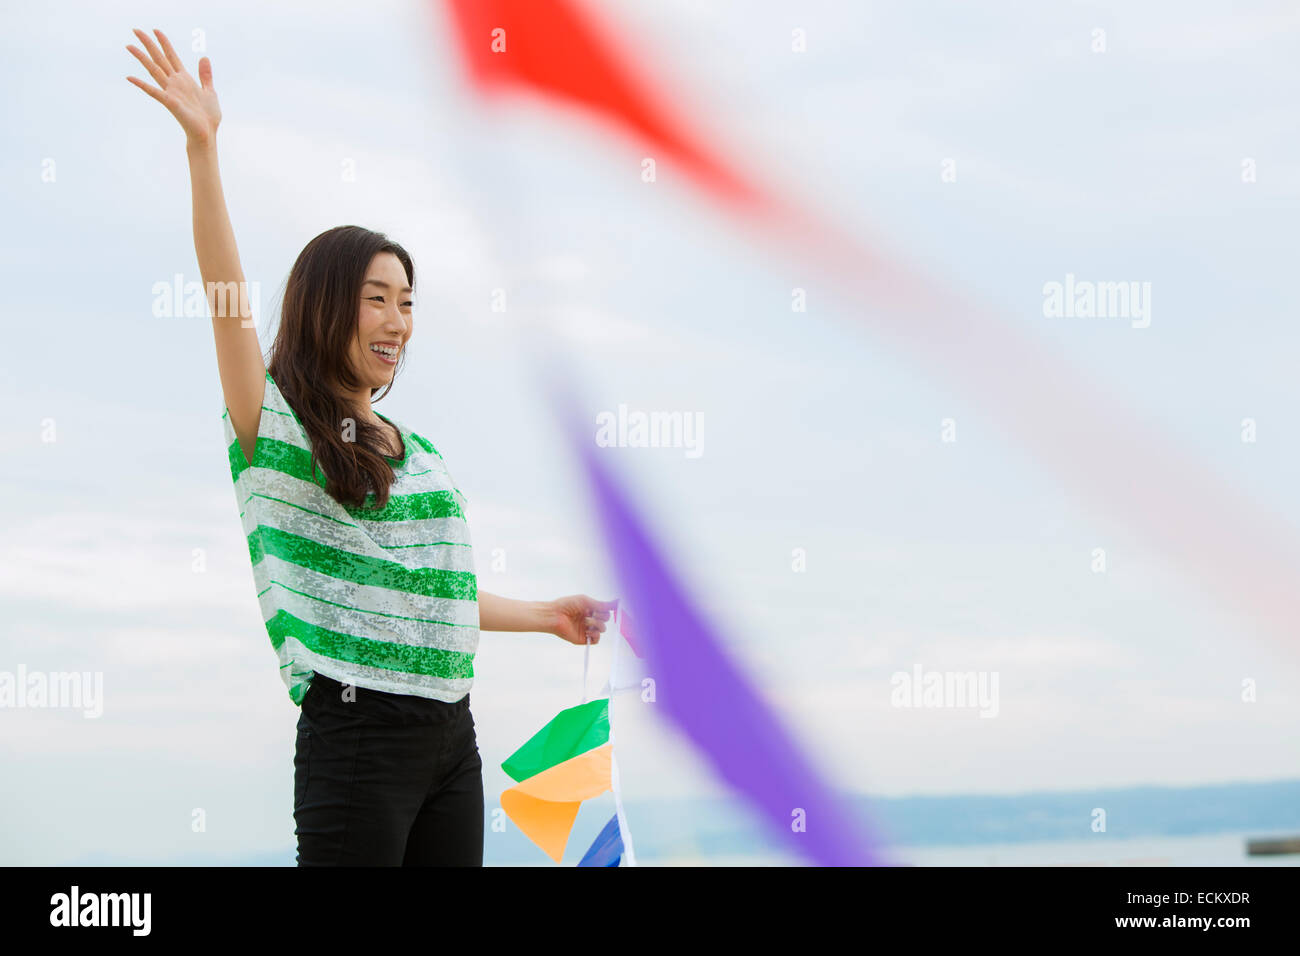 A woman on a beach in Kobe holding paper flags. - Stock Image